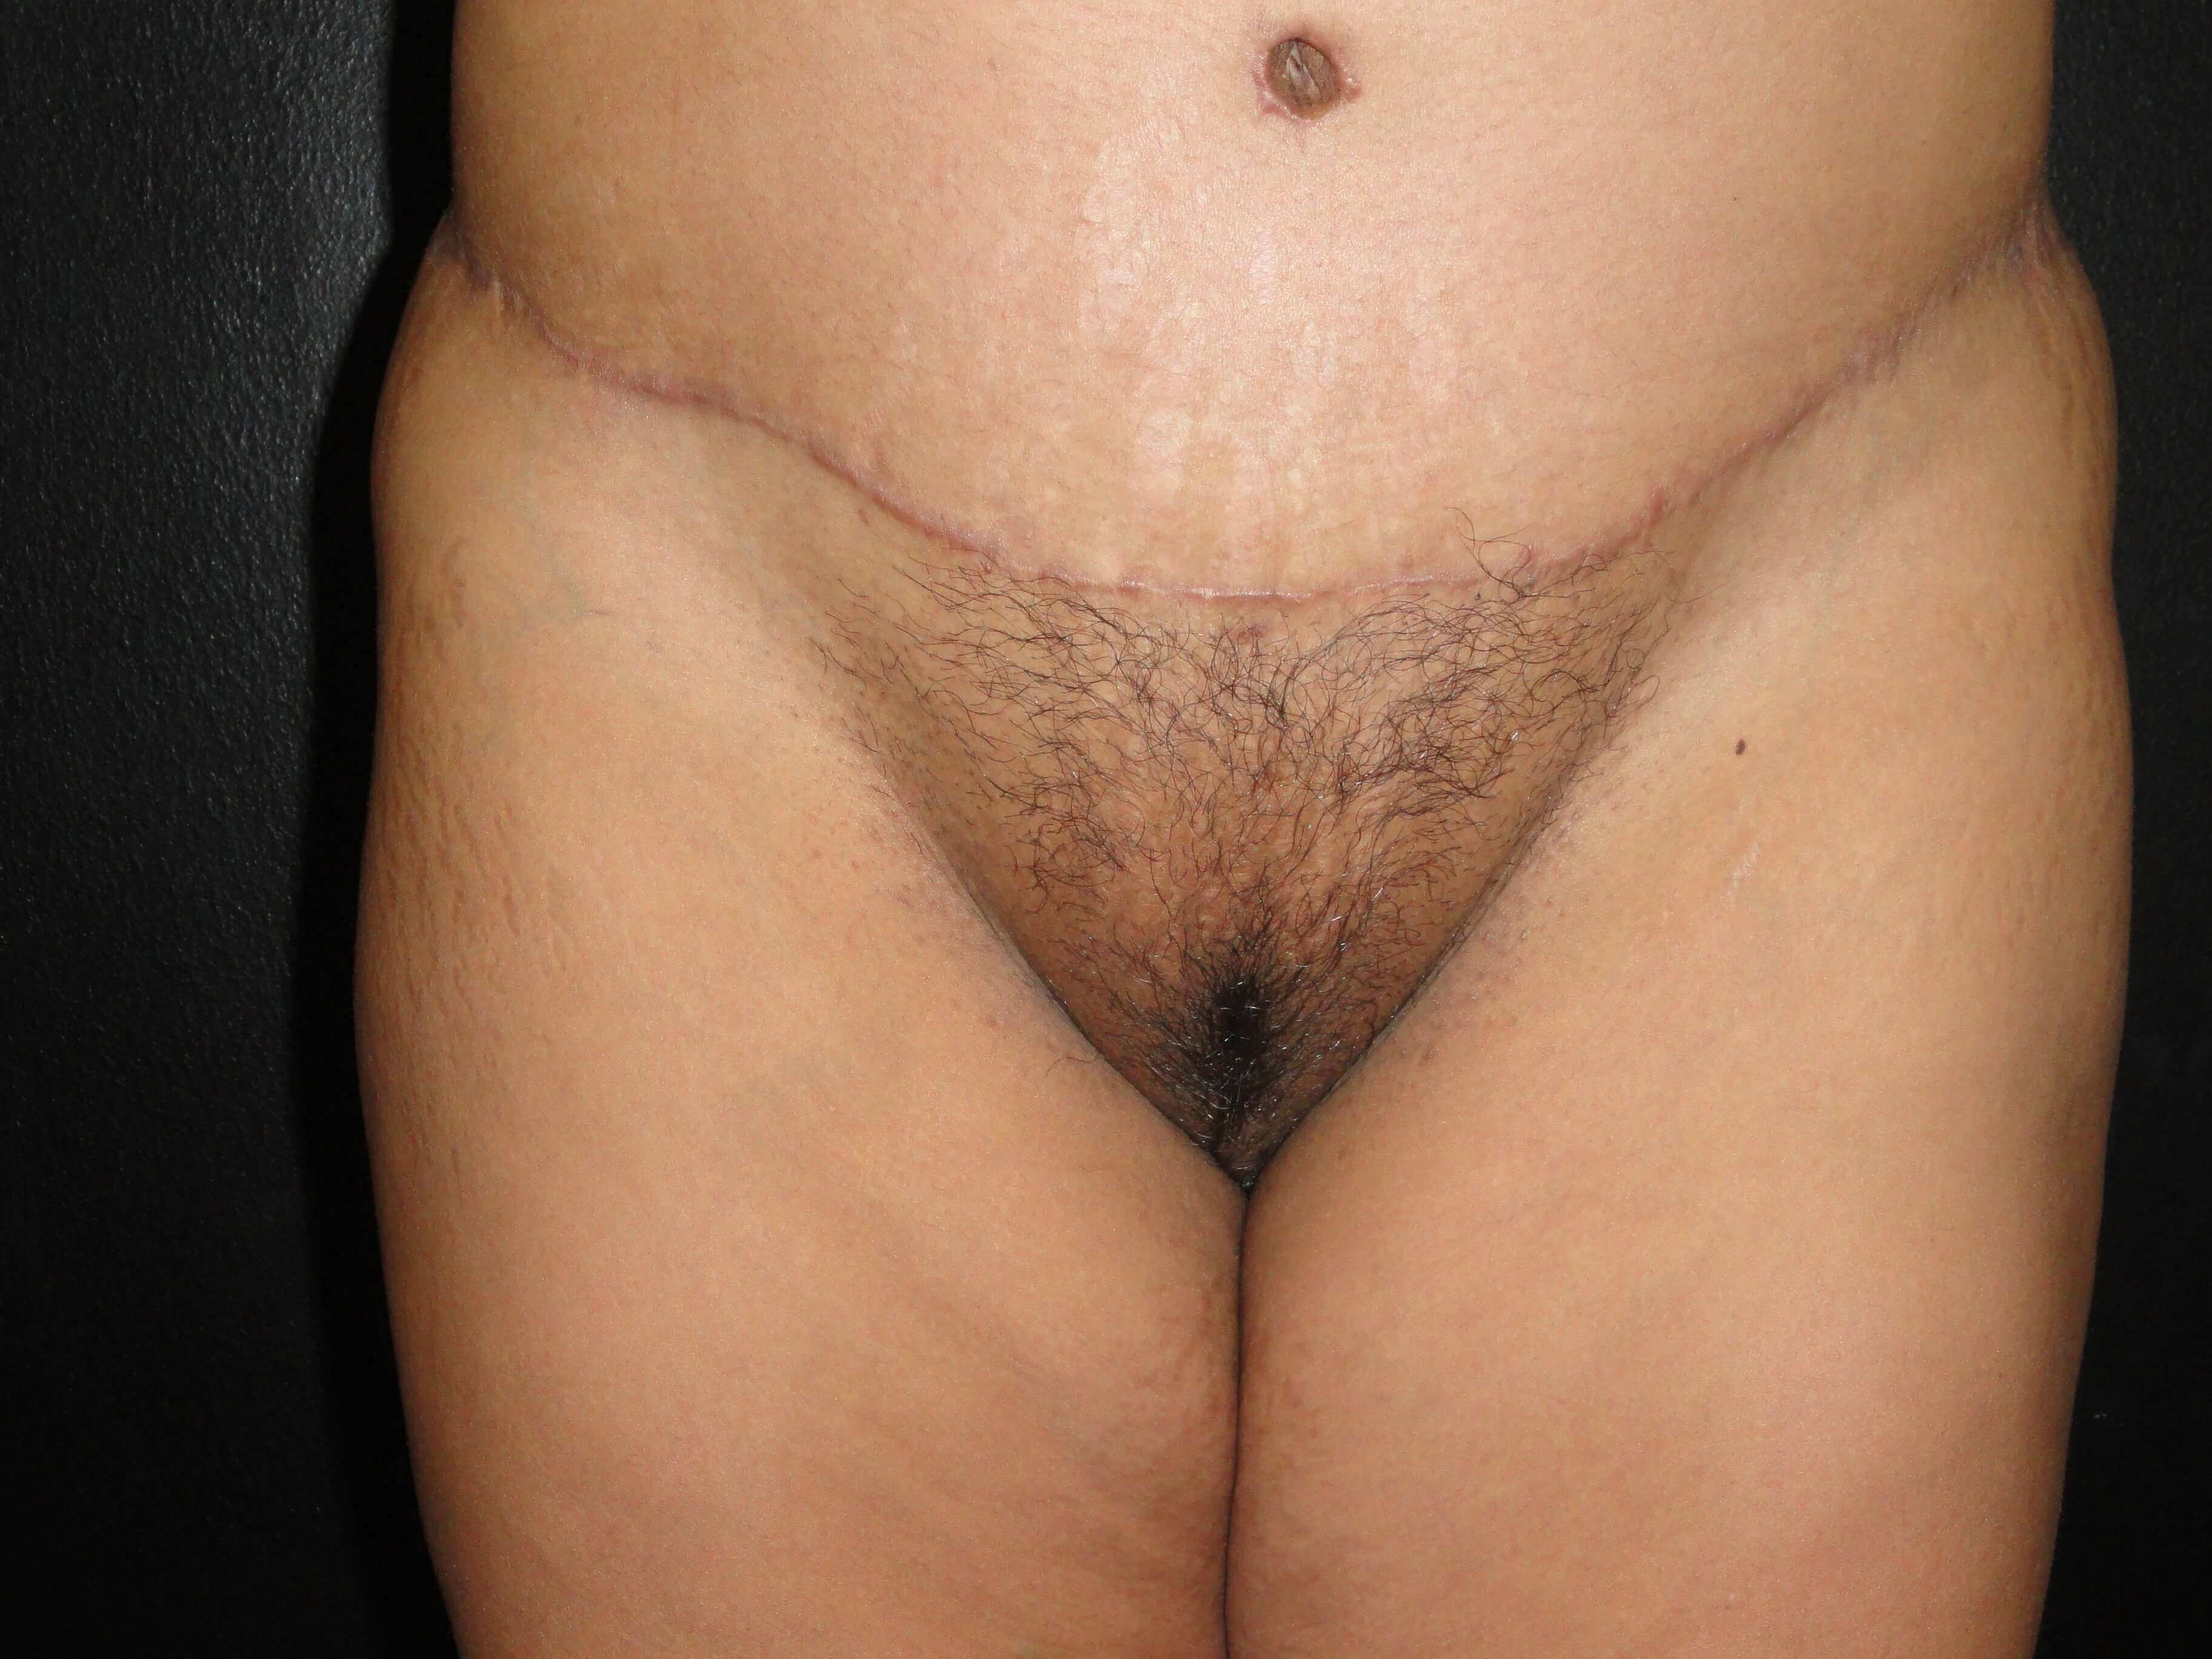 Front View - Pubic Region After